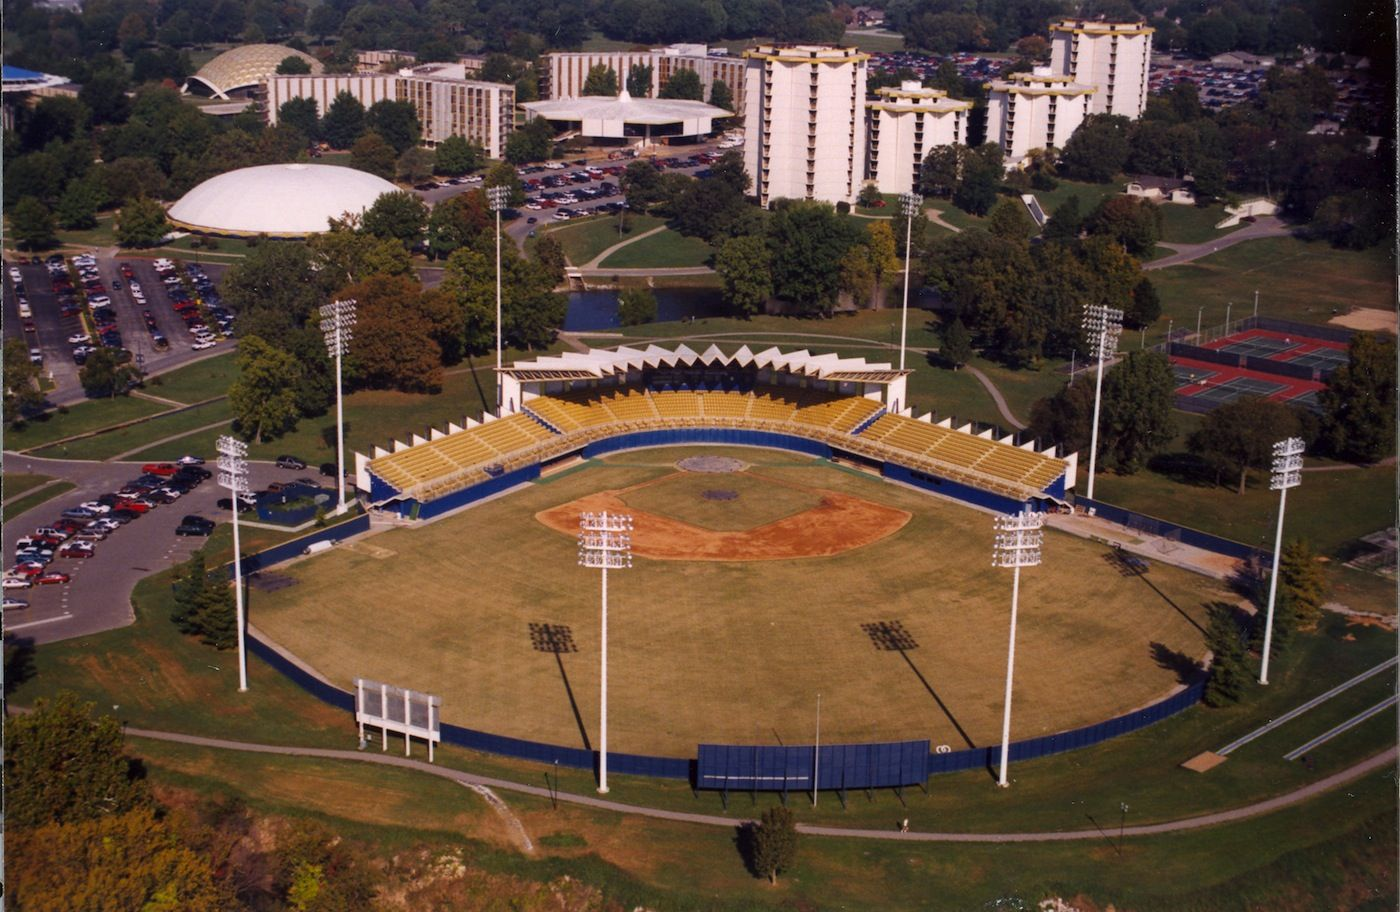 Here S An Old Photo Of The Baseball Stadium At Oru The Campus Has Definitely Changed Within The Years Baseball Stadium Old Photos